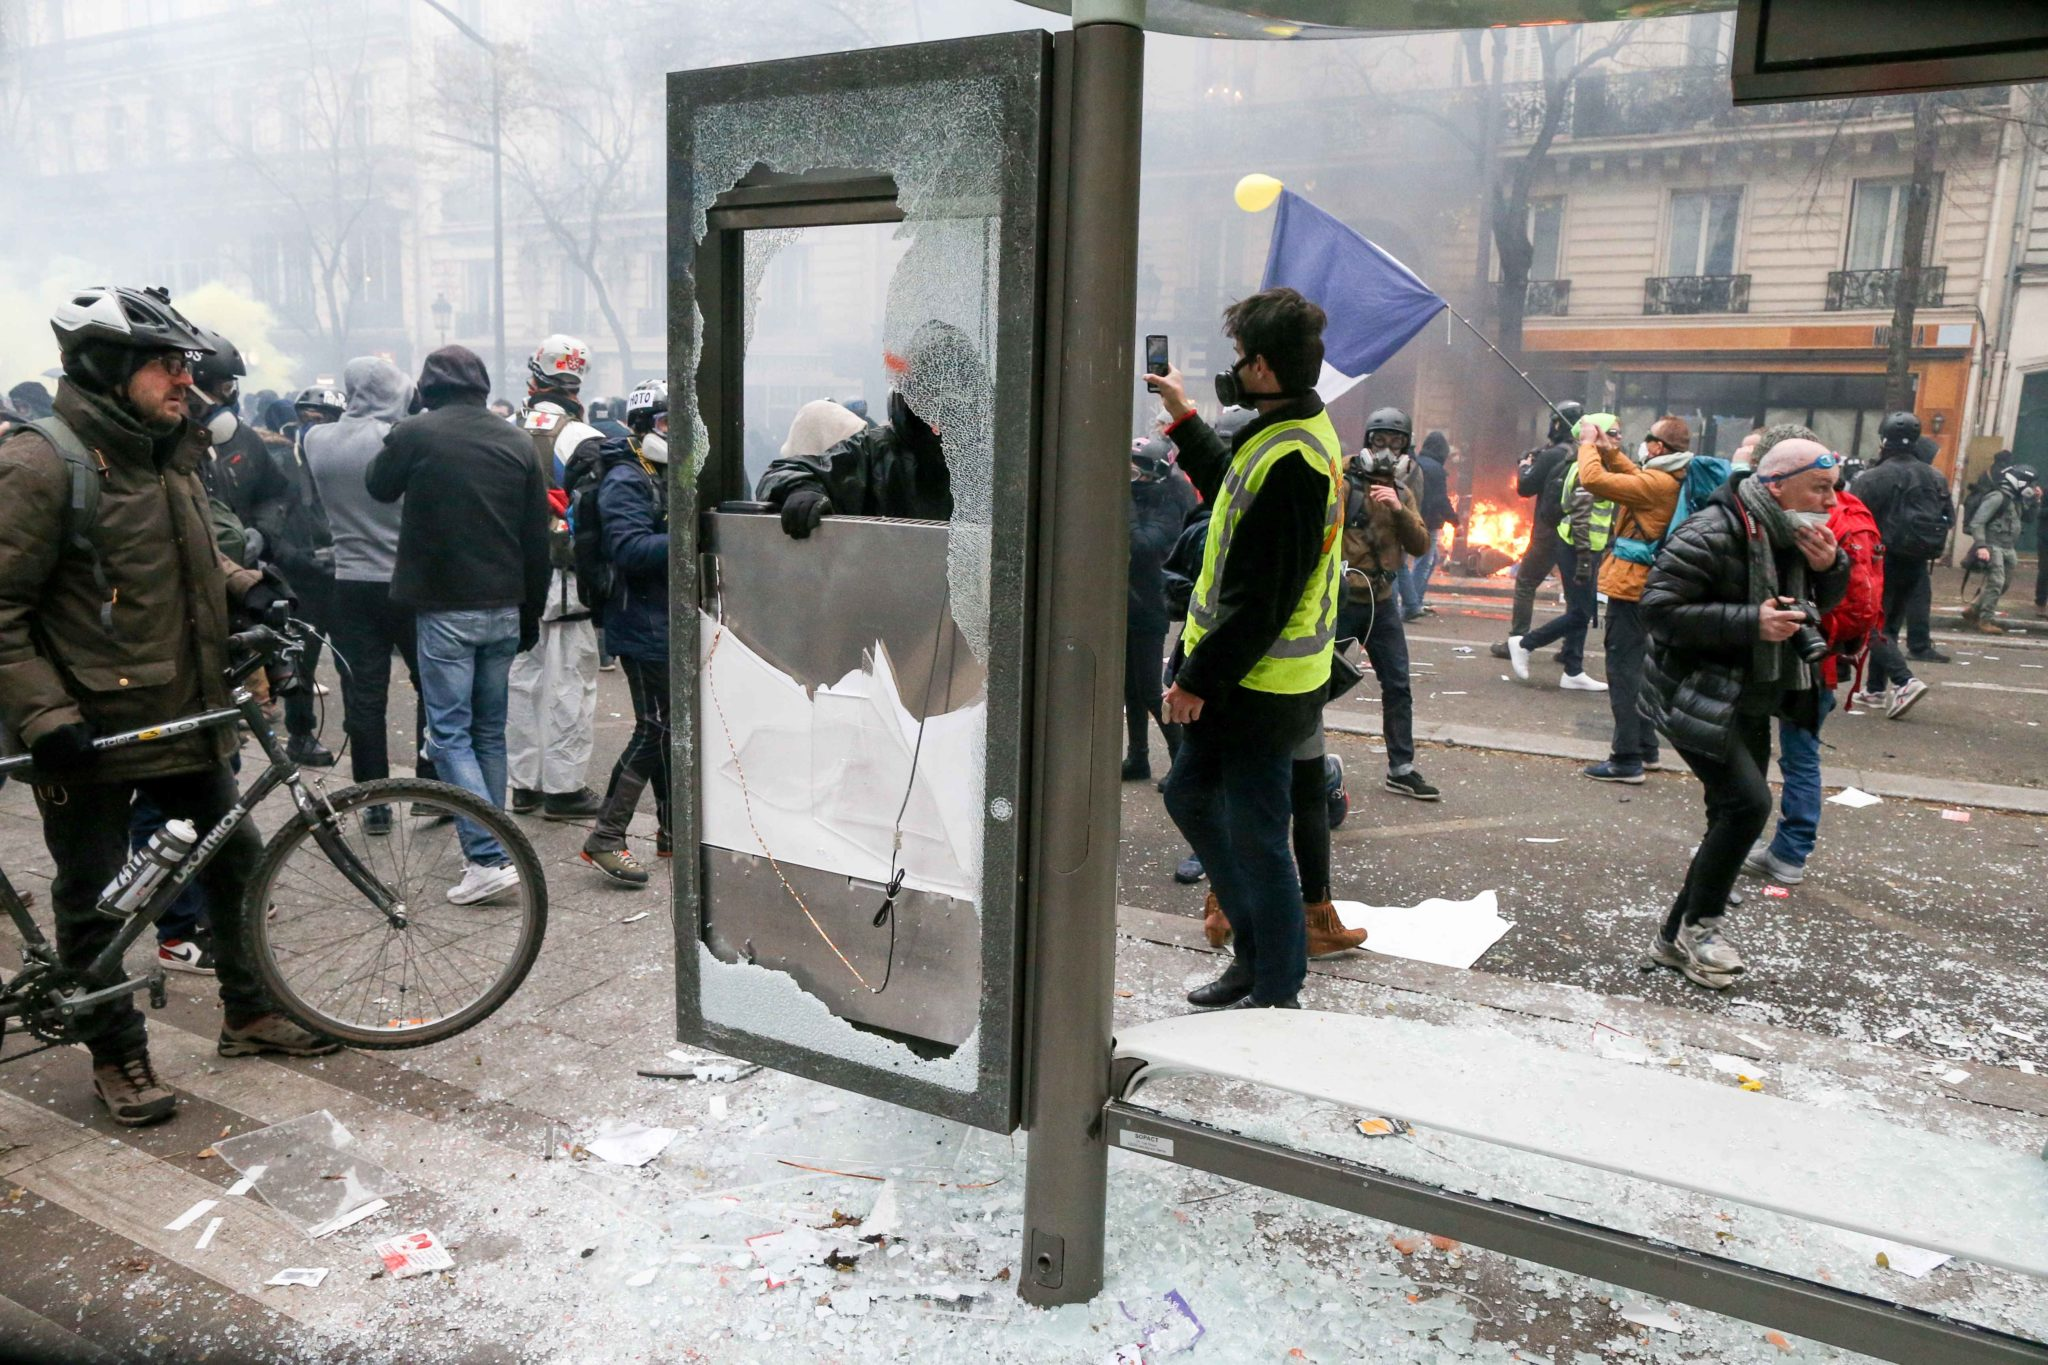 A bus bench is destroyed during a demontration to protest against the pension overhauls, in Paris, on December 5, 2019 as part of a national general strike. Trains cancelled, schools closed: France scrambled to make contingency plans on for a huge strike a